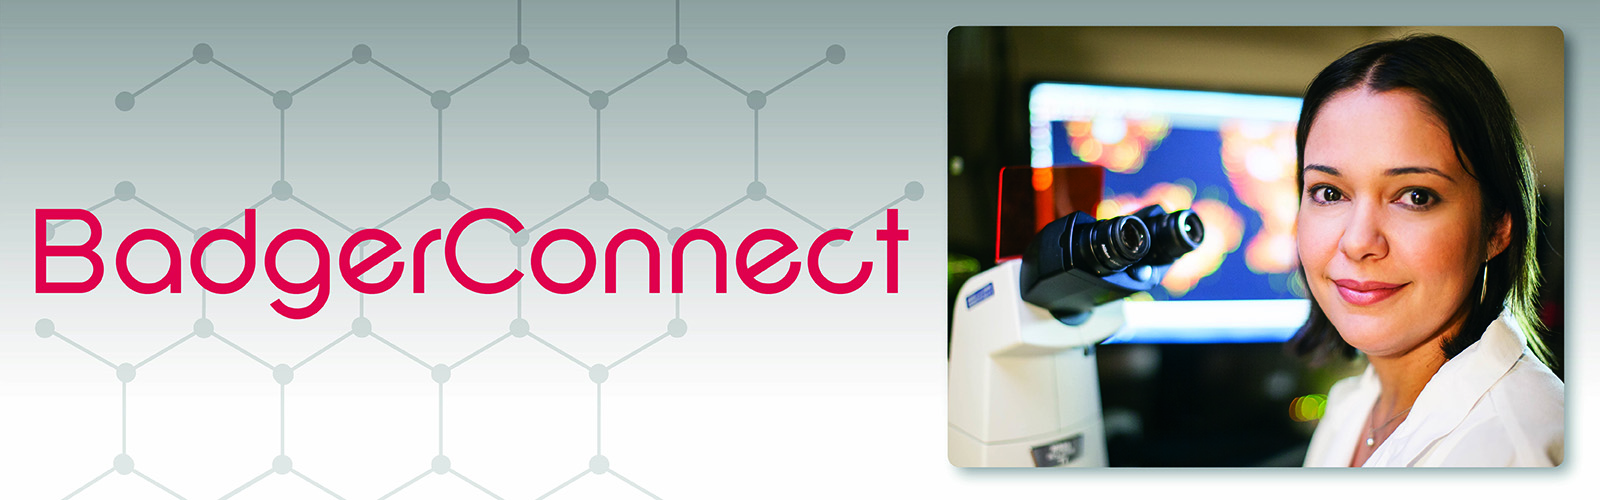 BadgerConnect banner with text reading BadgerConnect and an inset photo of a woman in a labcoat smiling at the camera